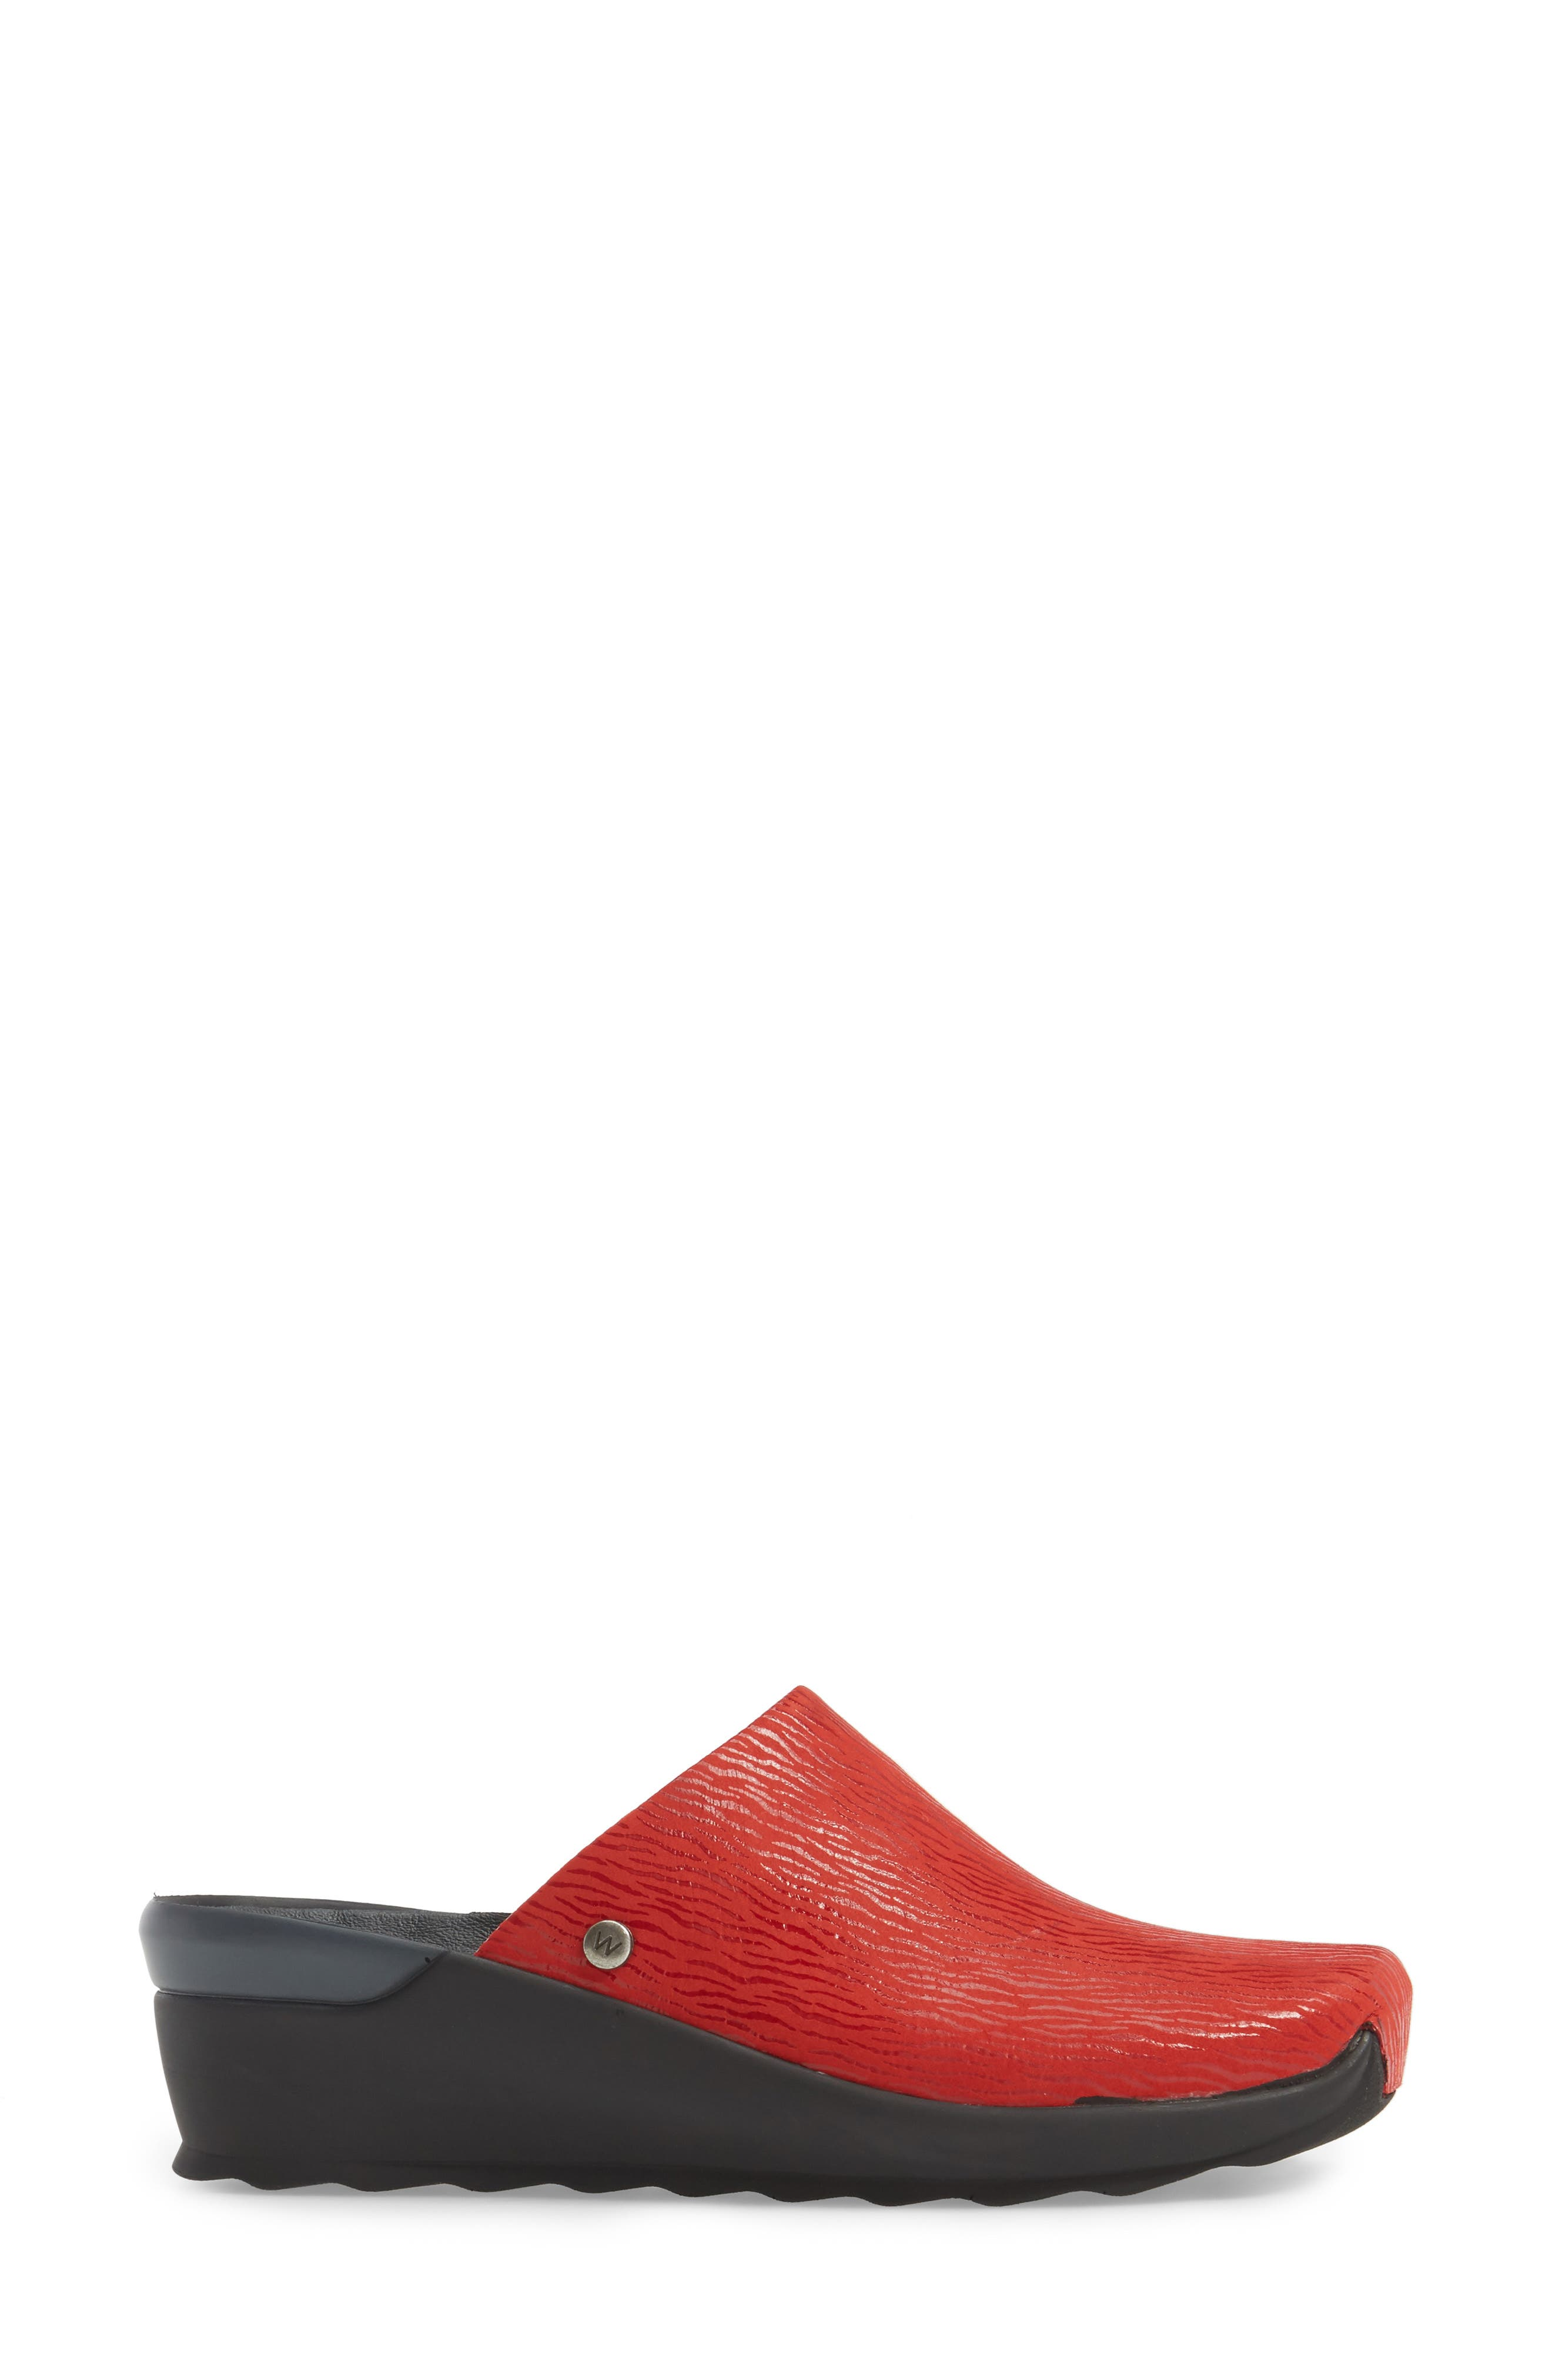 Go Clog,                             Alternate thumbnail 3, color,                             Red Leather